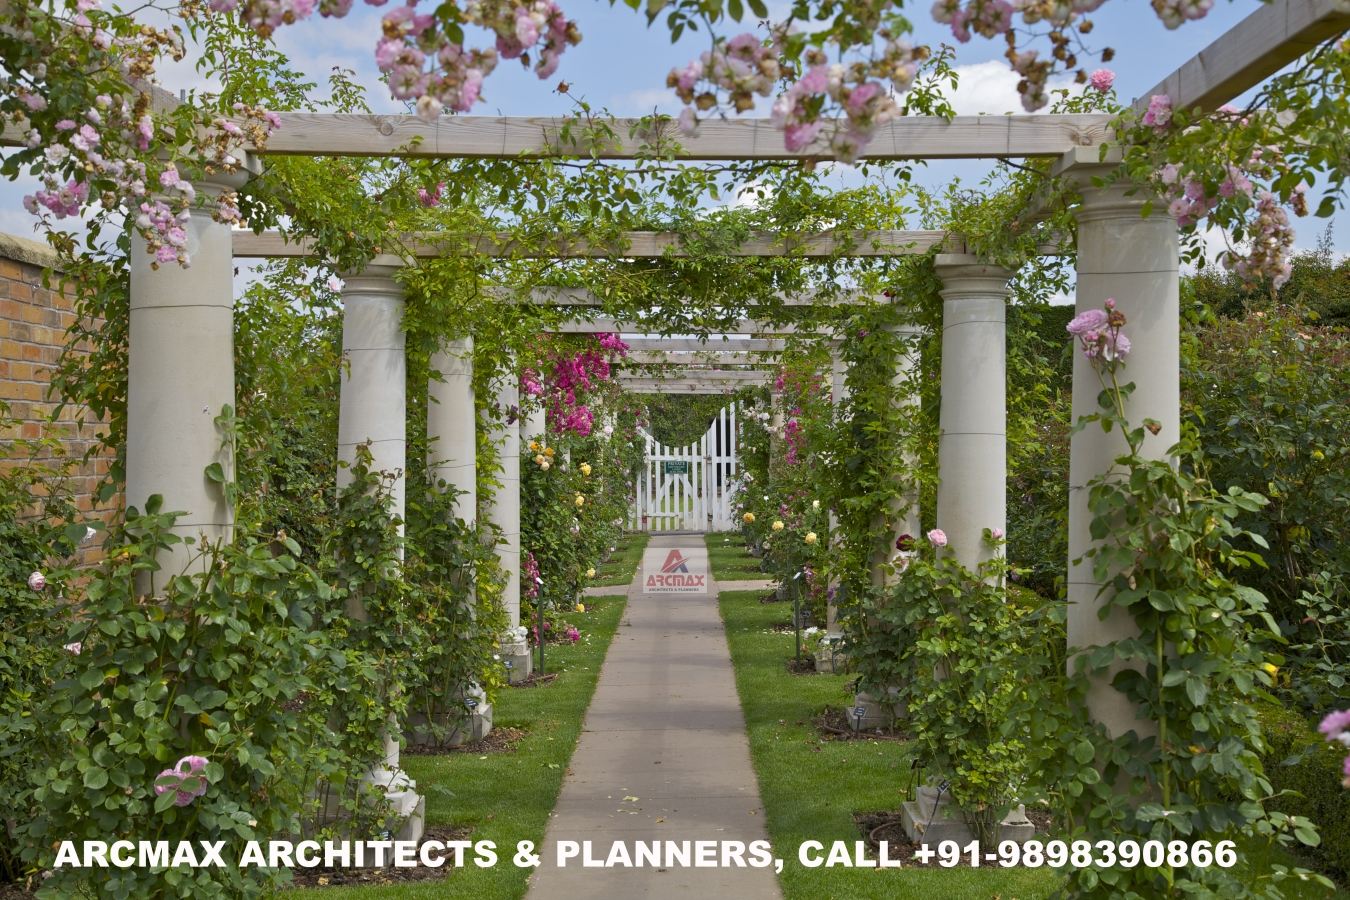 Best Architects For Marriage Garden Design In Ahmedabad